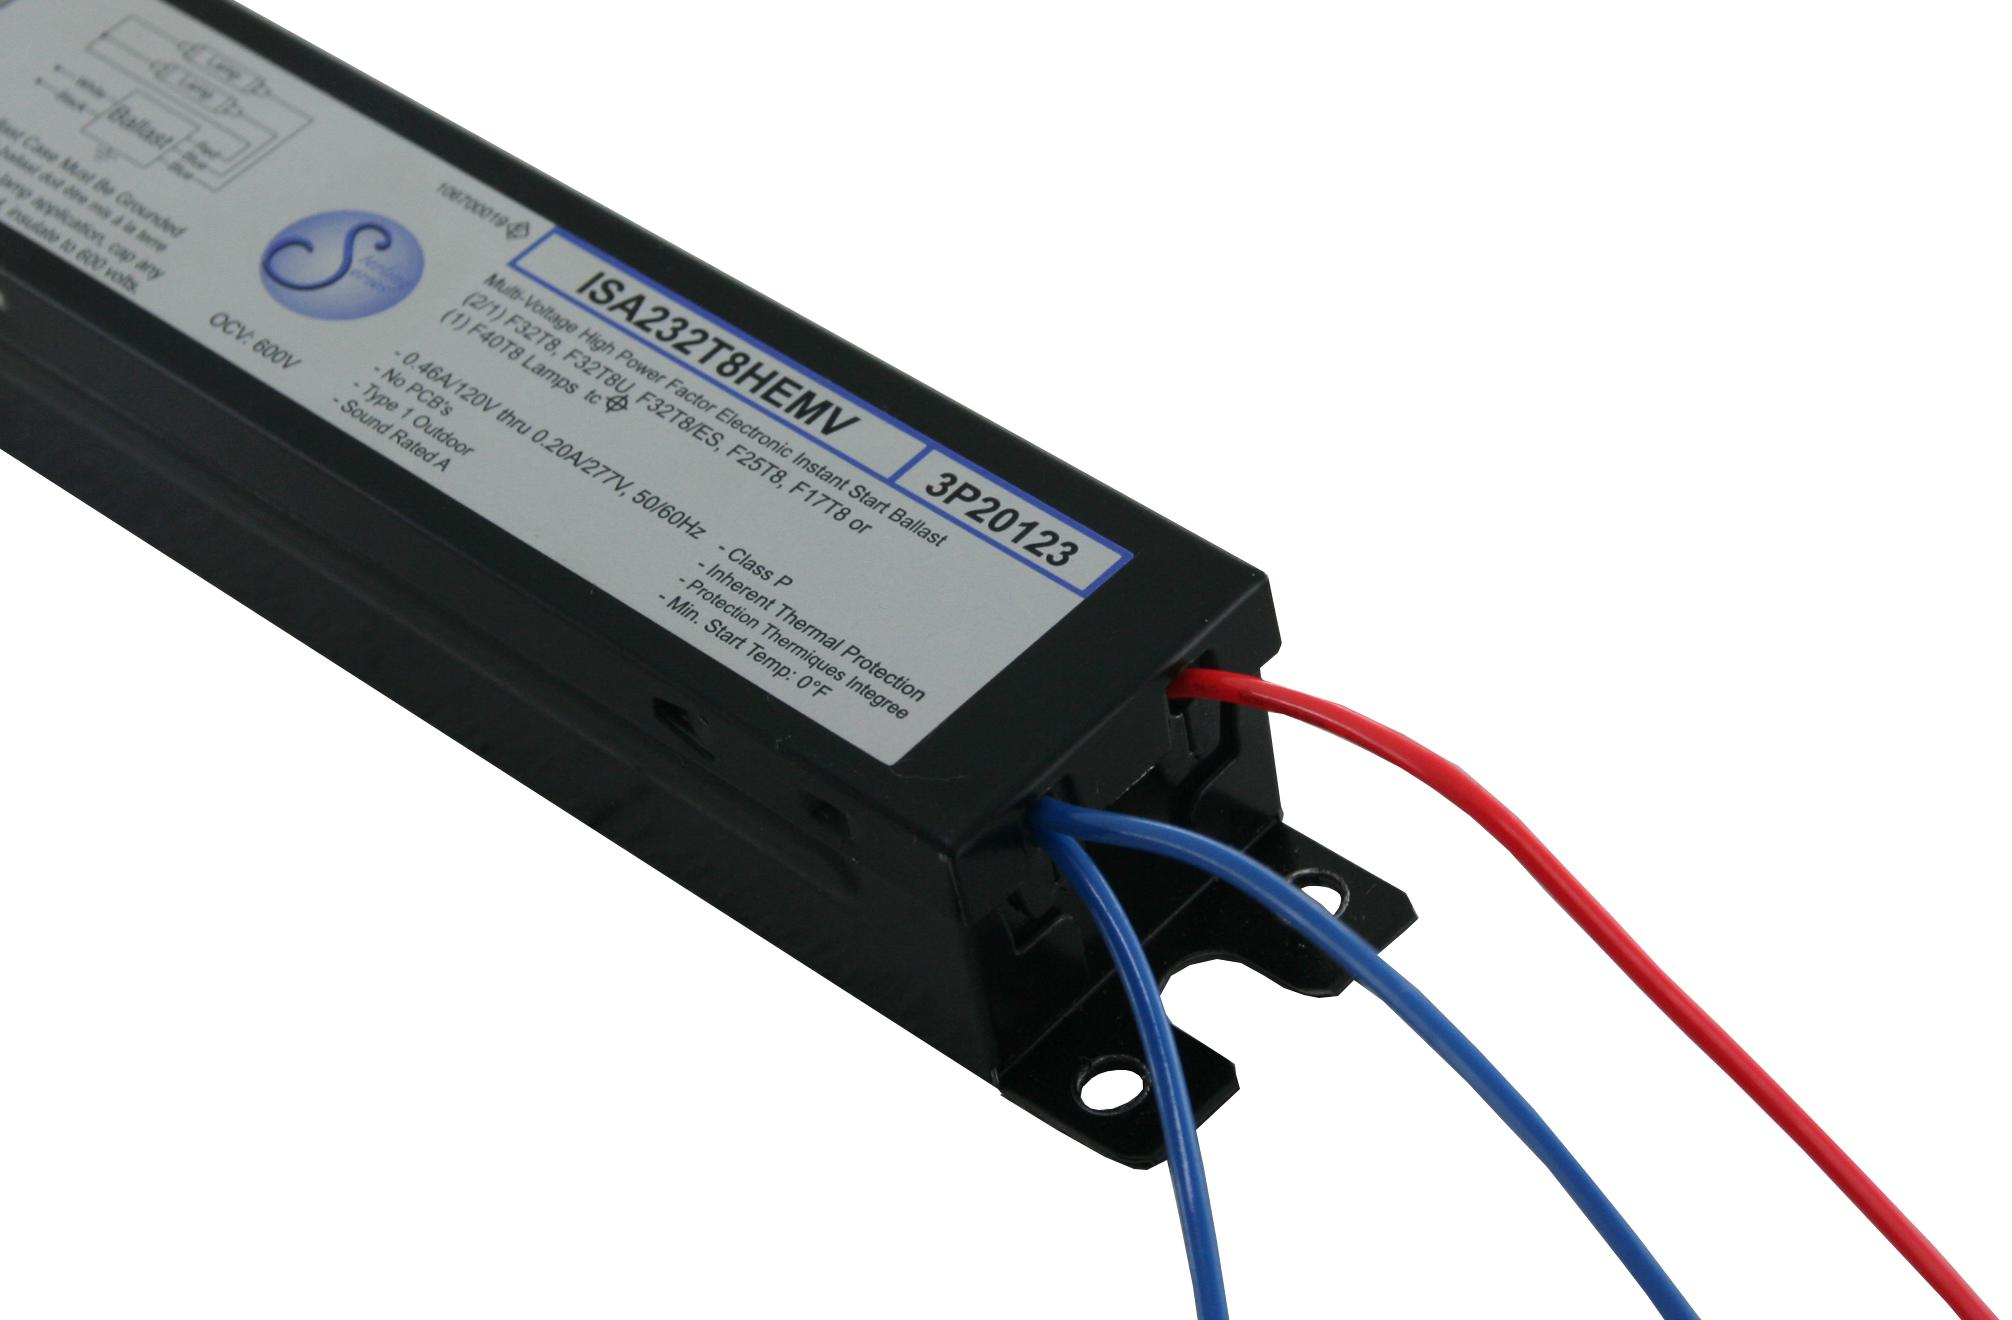 Robertson 3p20123 Fluorescent Ballast For 2 1 F32t8 Linear Lamp Wiring Diagram View Larger